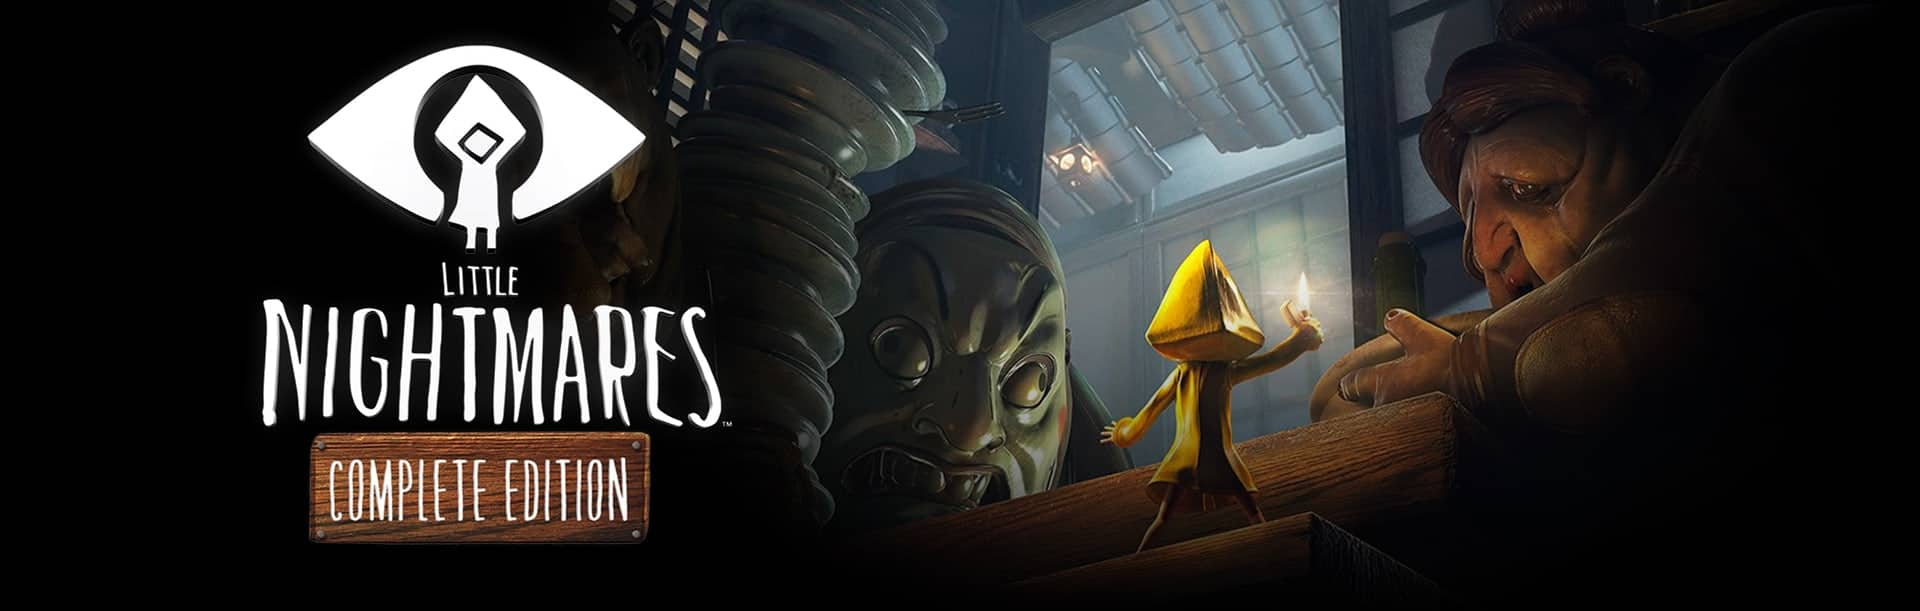 Little Nightmares: Complete Edition (PC Digital Download) $5.89 @ Fanatical